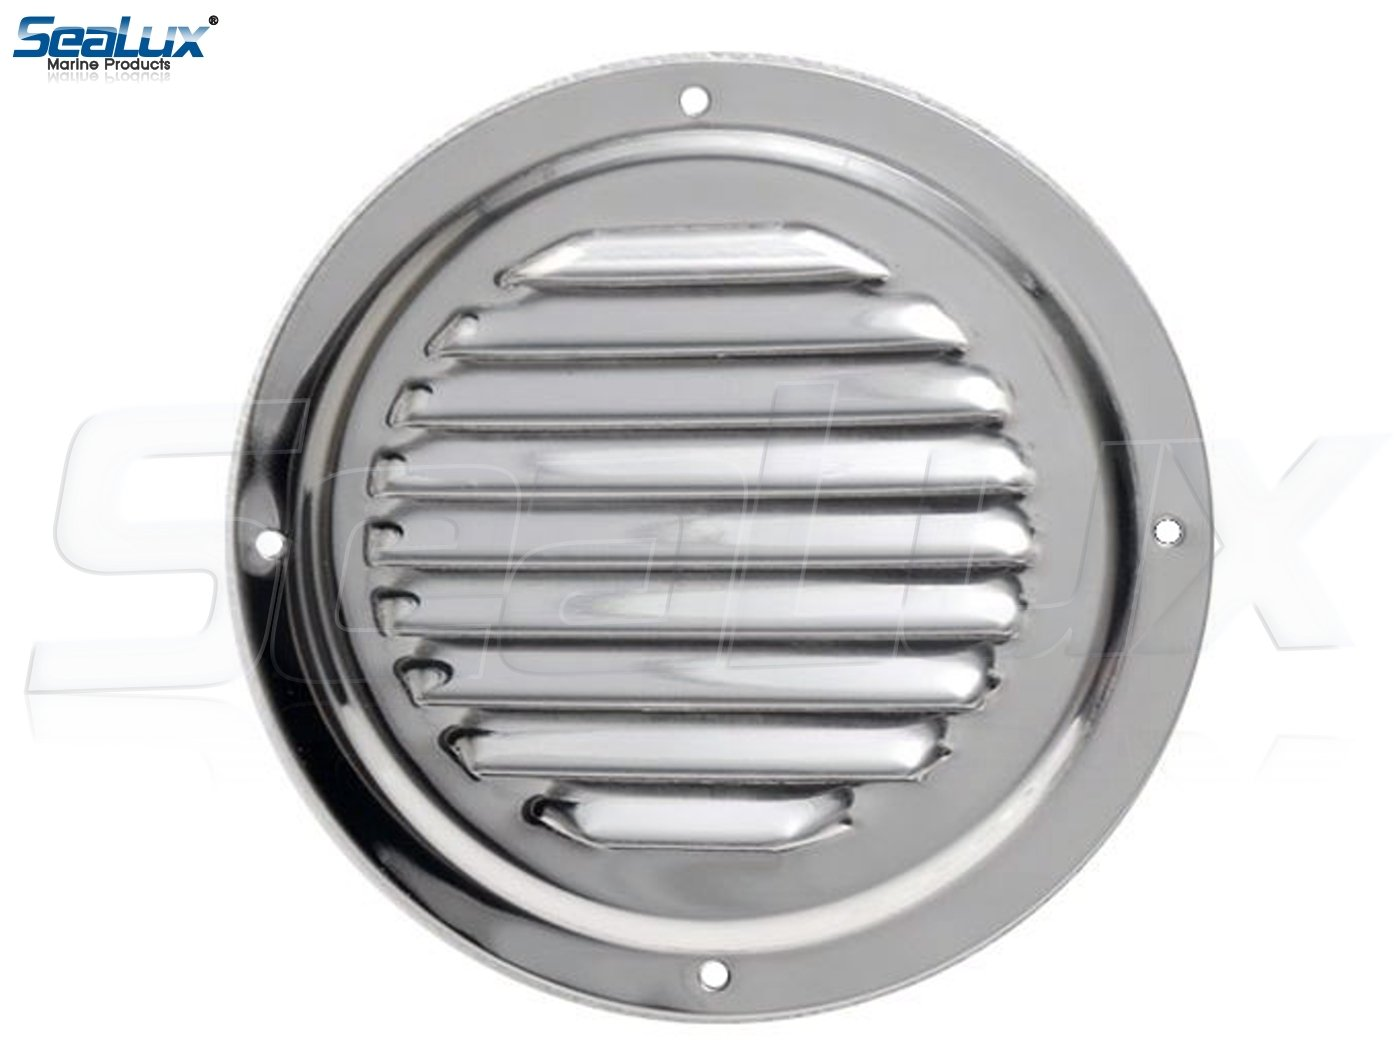 SeaLux Stainless Steel 5 Inch Marine Boat Engine Louvered Style Vent Cover